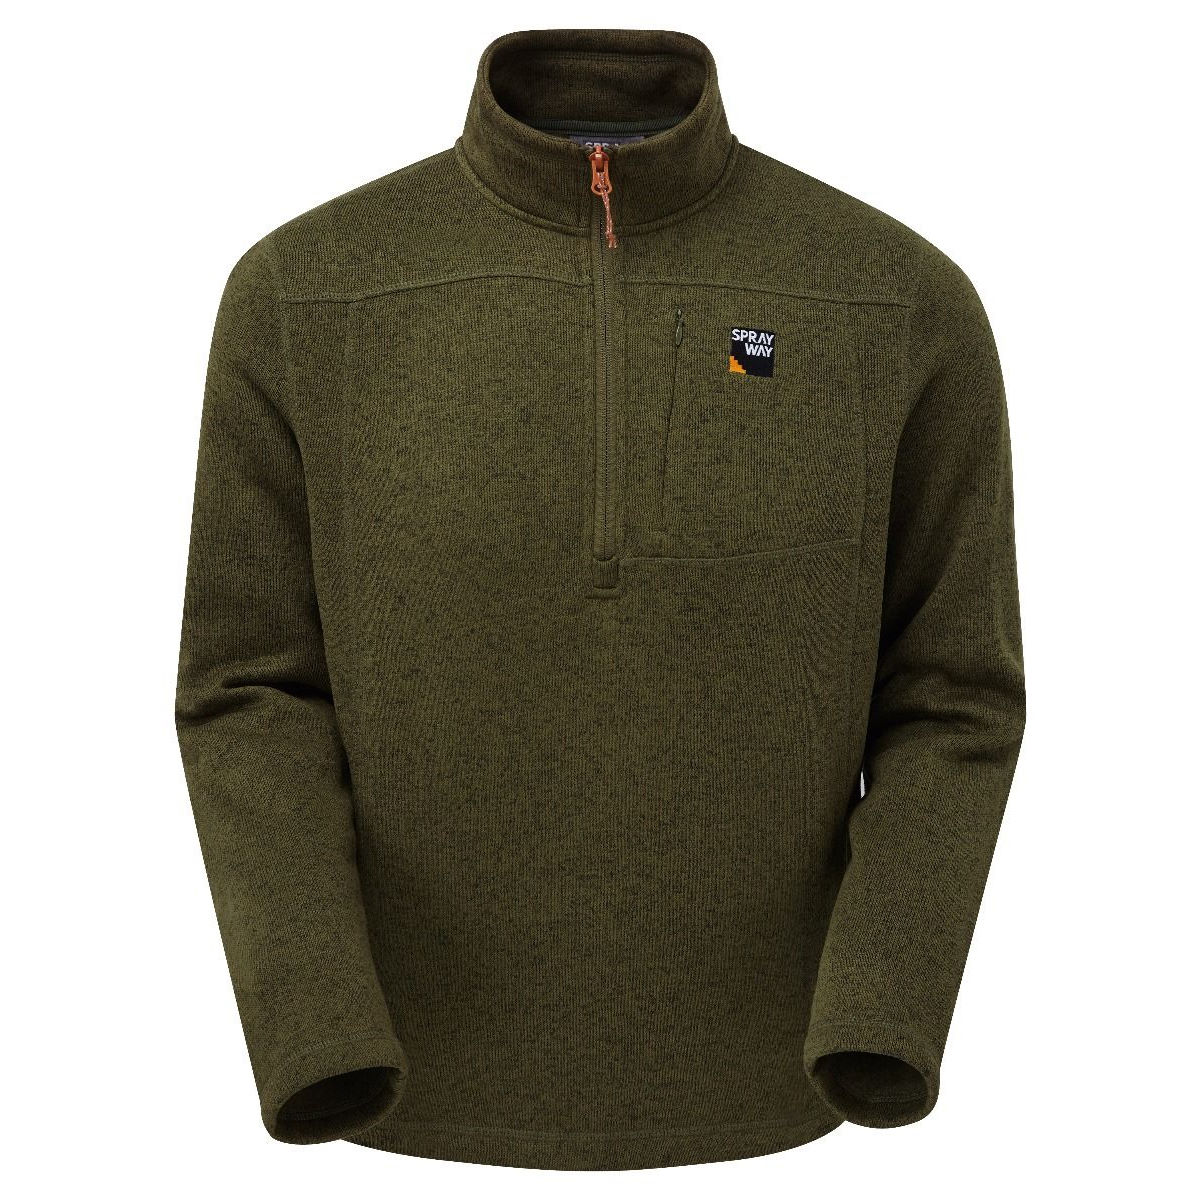 Sprayway MINOS 1/2 Zip Fleece - Forros polares